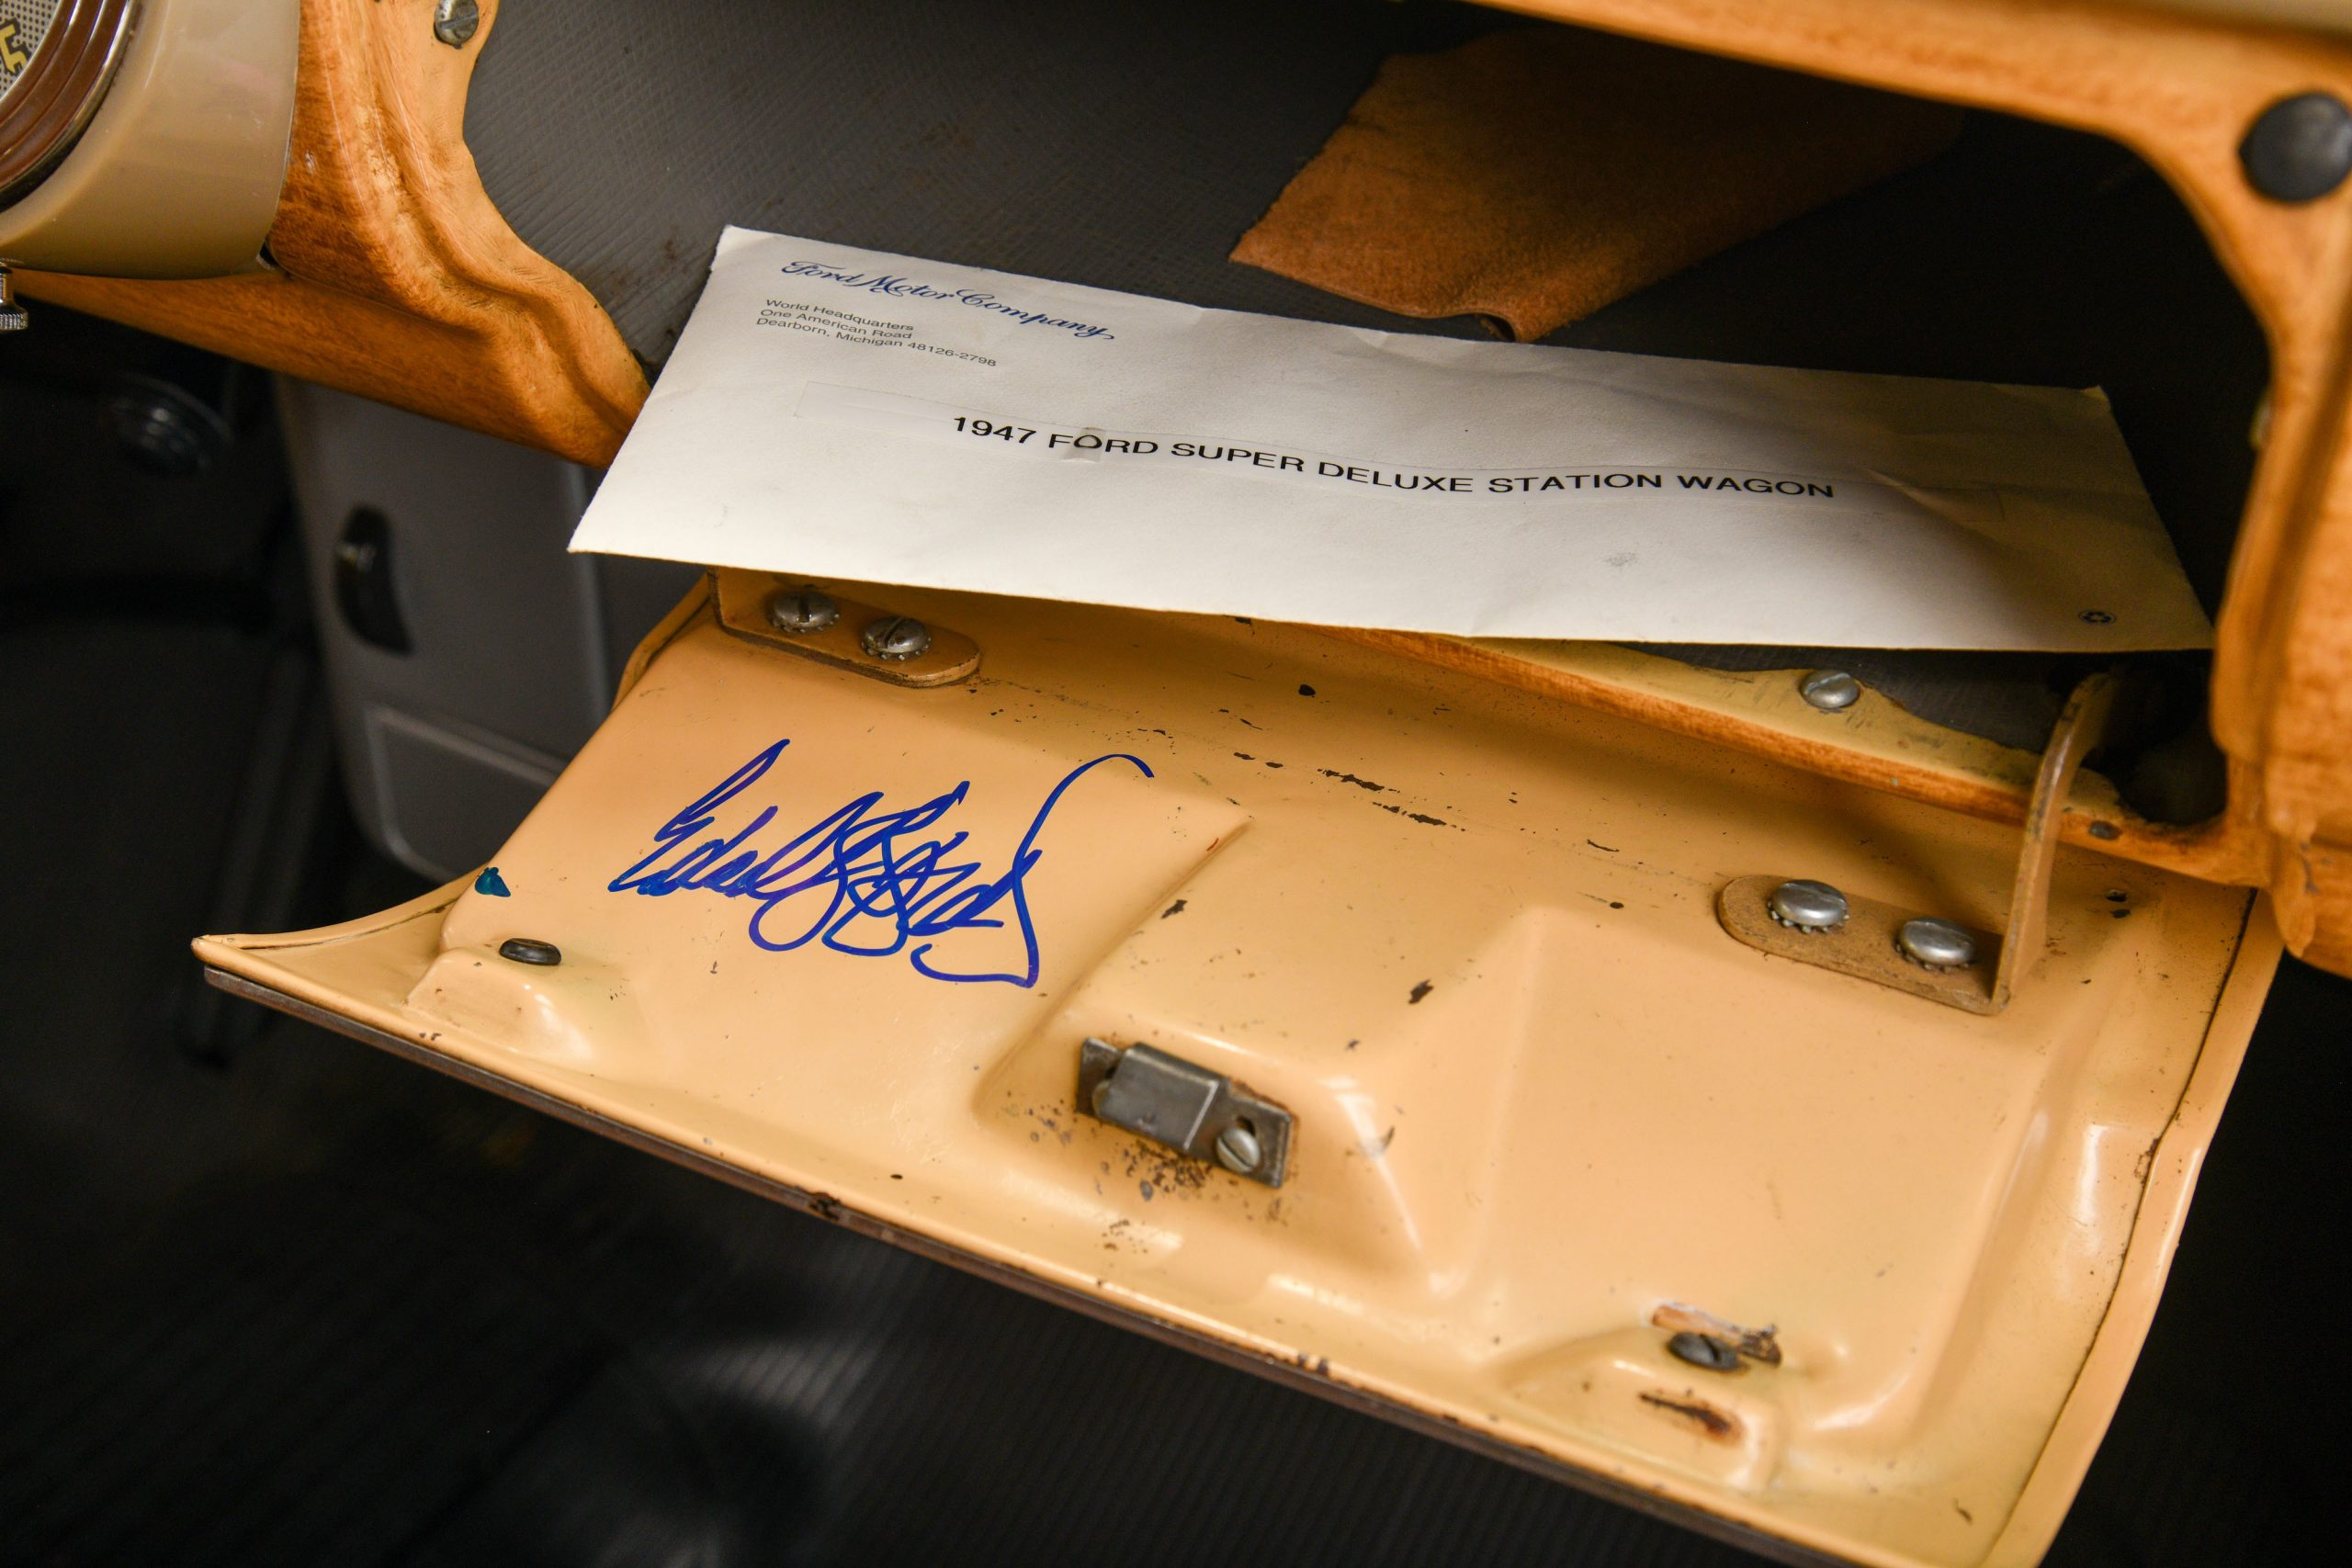 1947 FORD SUPER DELUXE CUSTOM interior signed glove box and letter